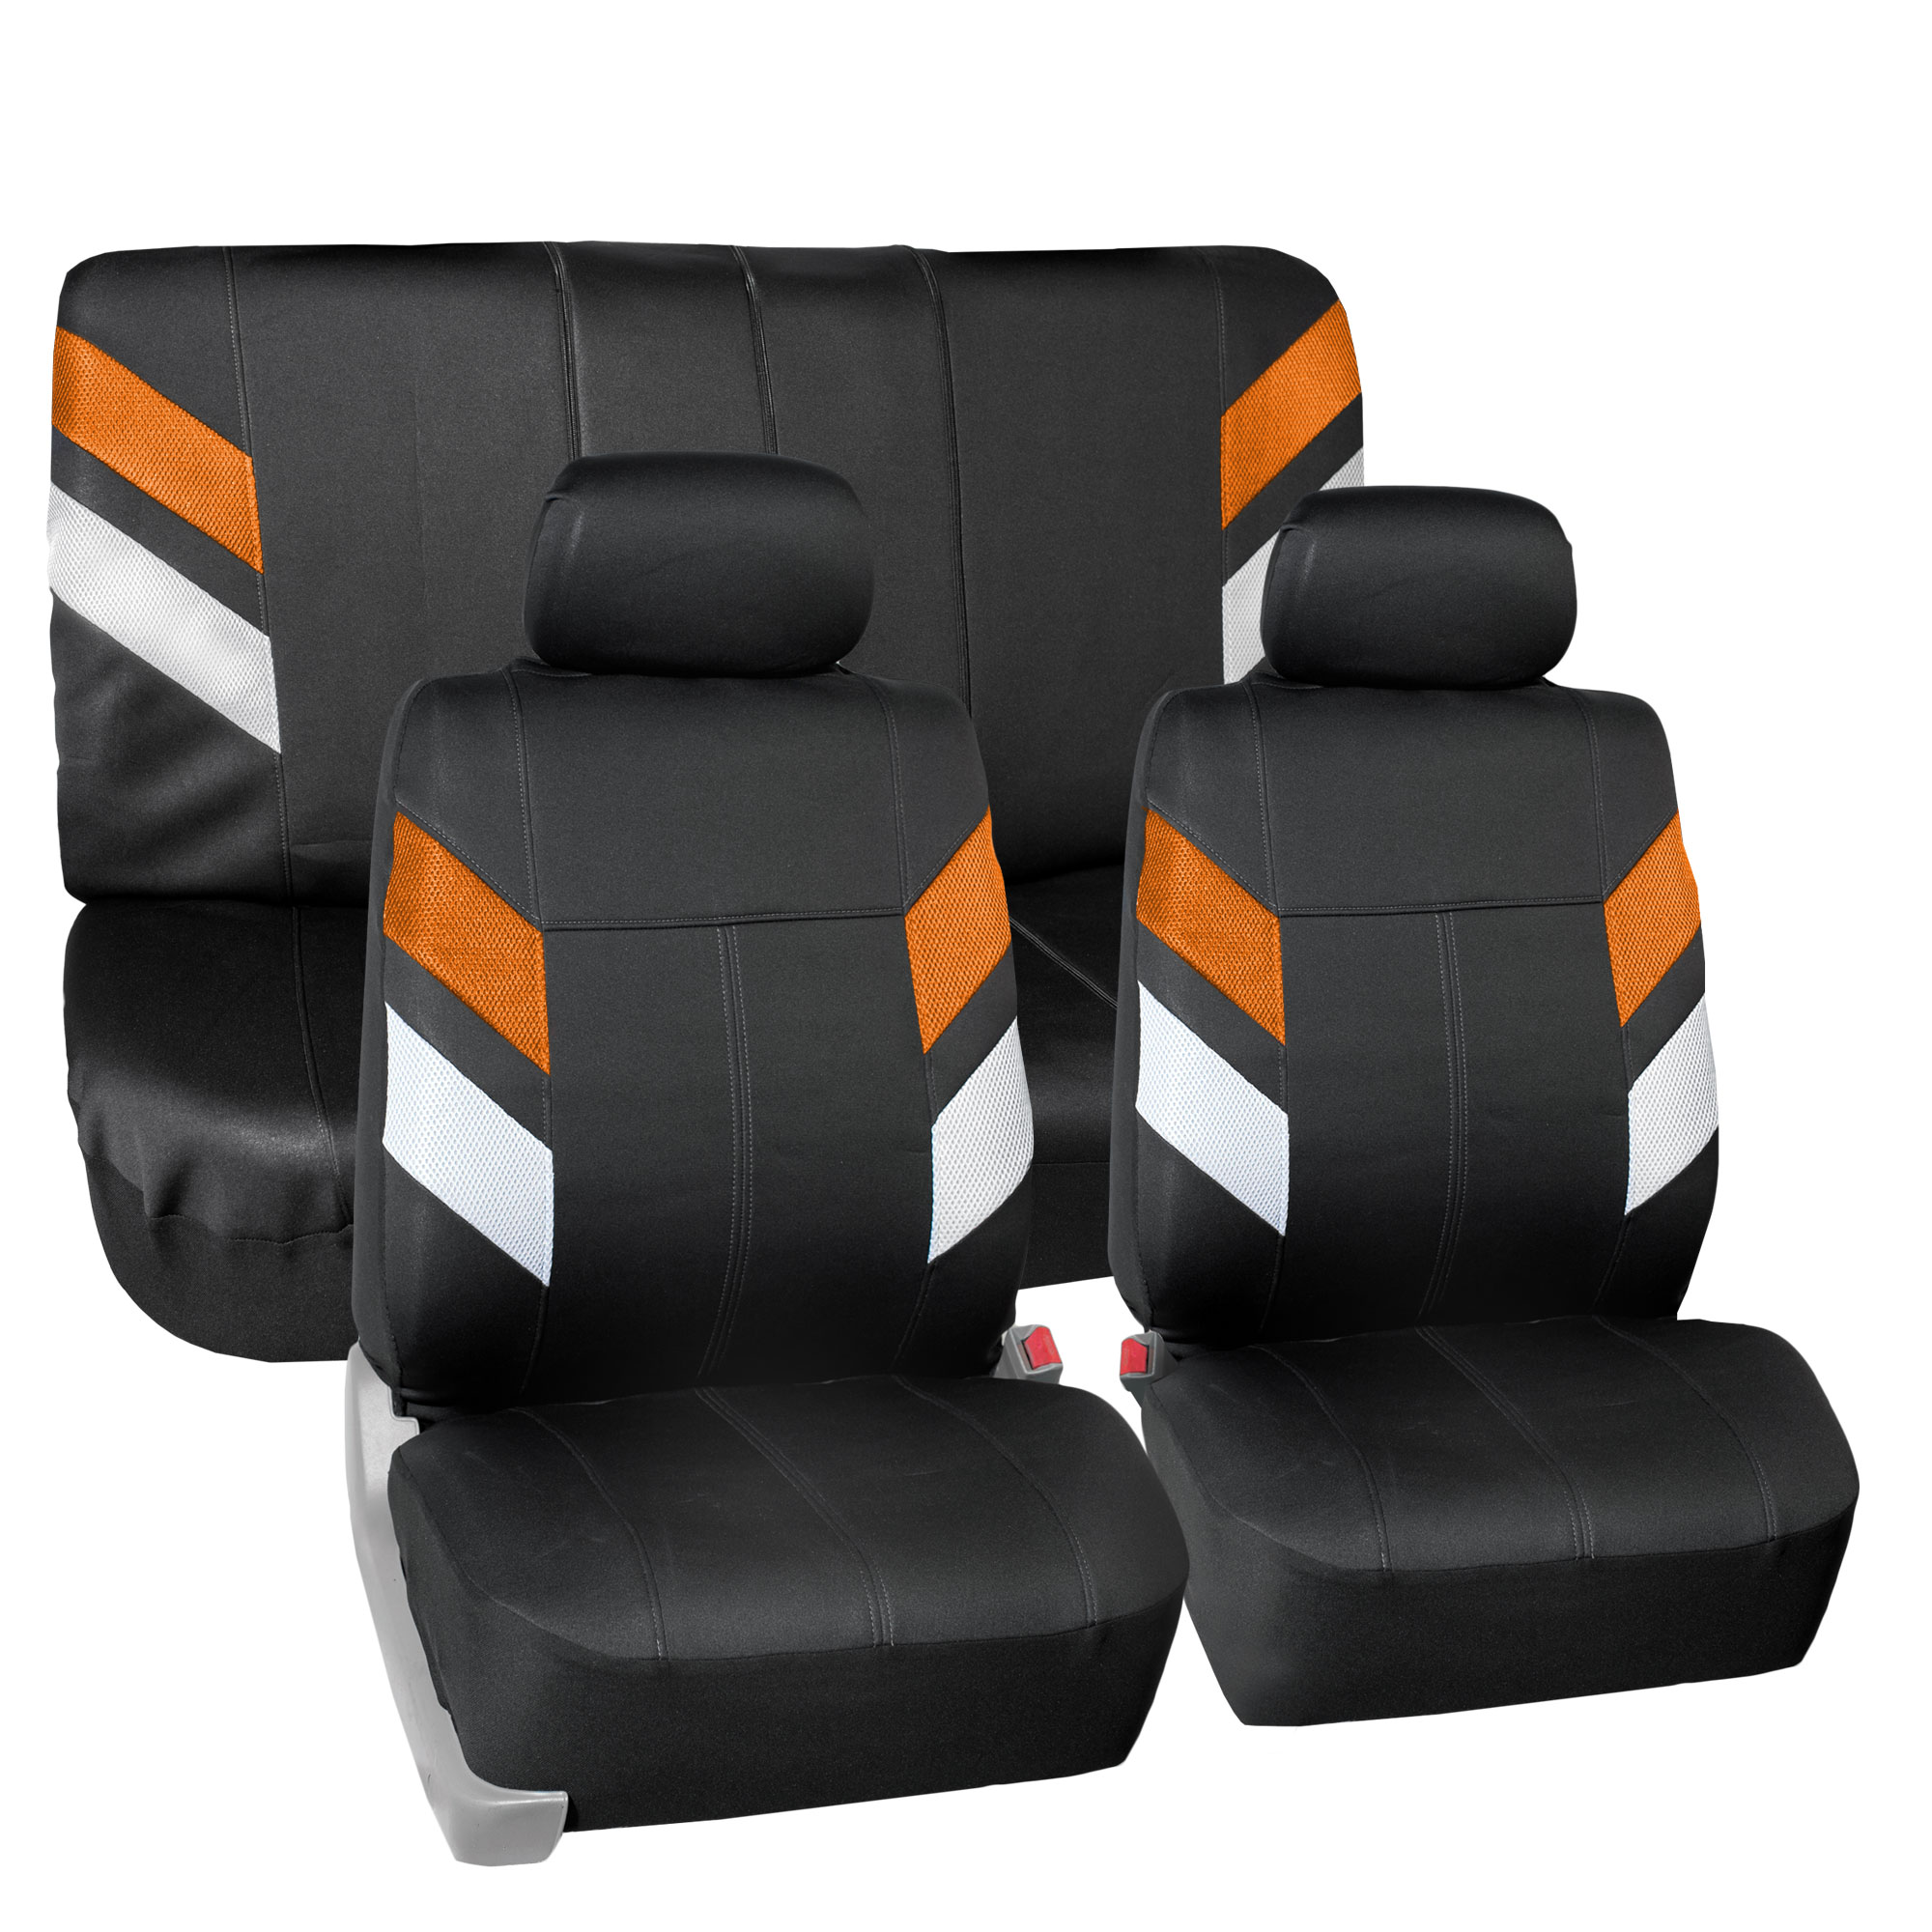 FH Group, Neoprene Car Seat Covers for Auto Car SUV Van 2 Headrest Full Set 12 Colors